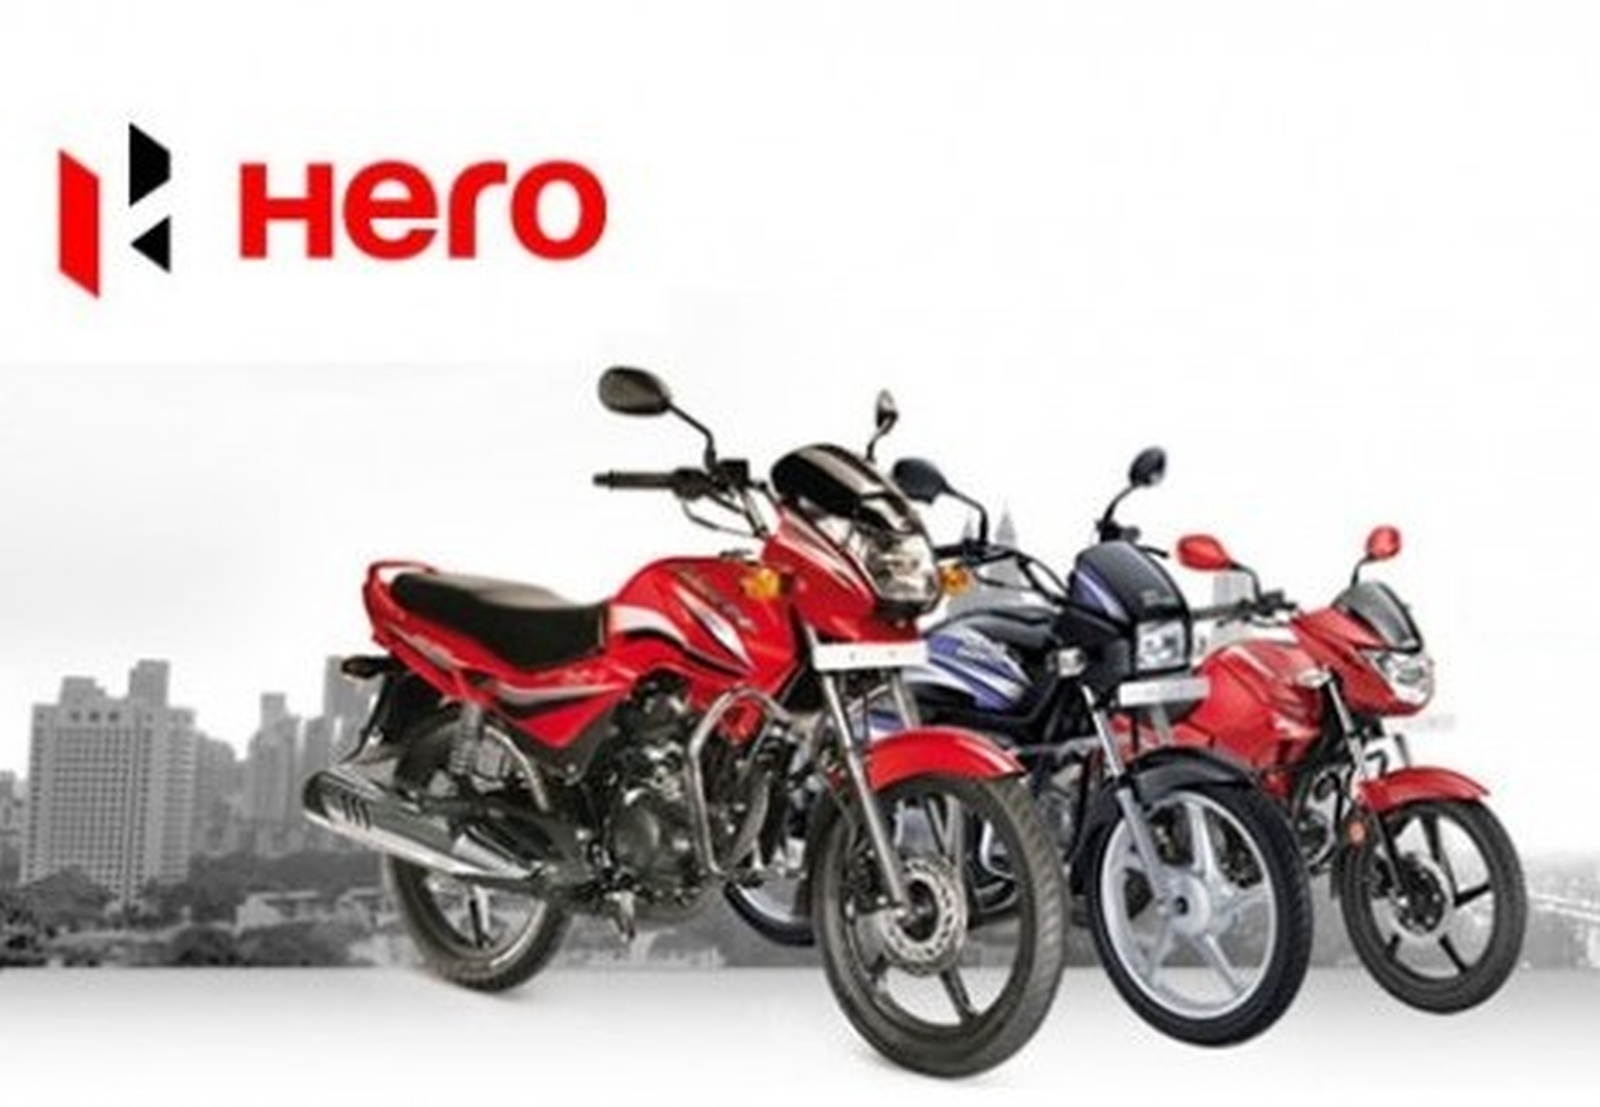 honda and hero group Hero honda is a joint venture that began in 1984 between the hero group of india and honda of japan it has been the world's biggest manufacturer of 2-wheeled motorized vehicles since 2001, when it produced 13 million motorbikes in a single year.